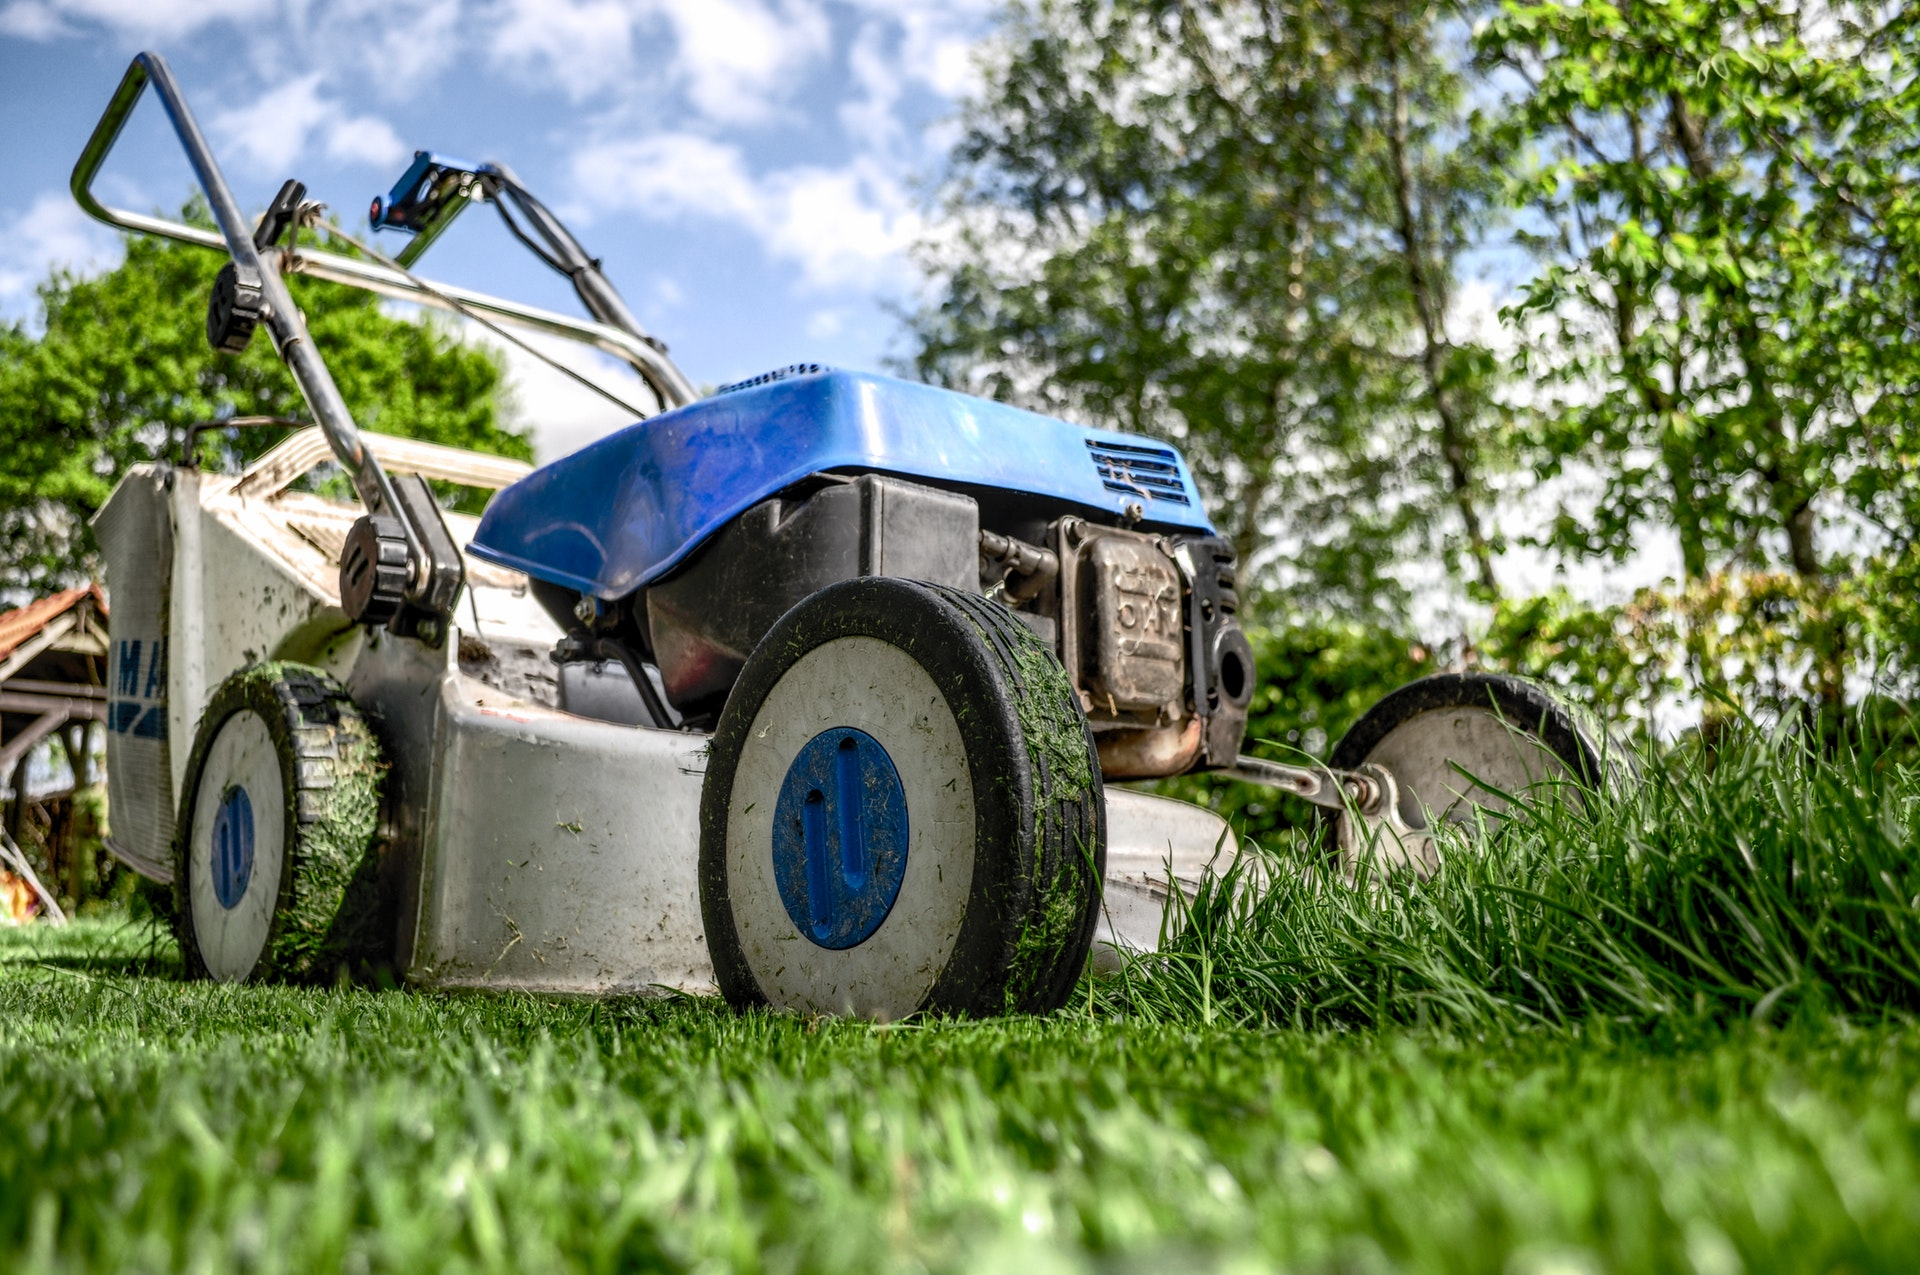 How to Winterize Your Lawn Mower the Safe Way